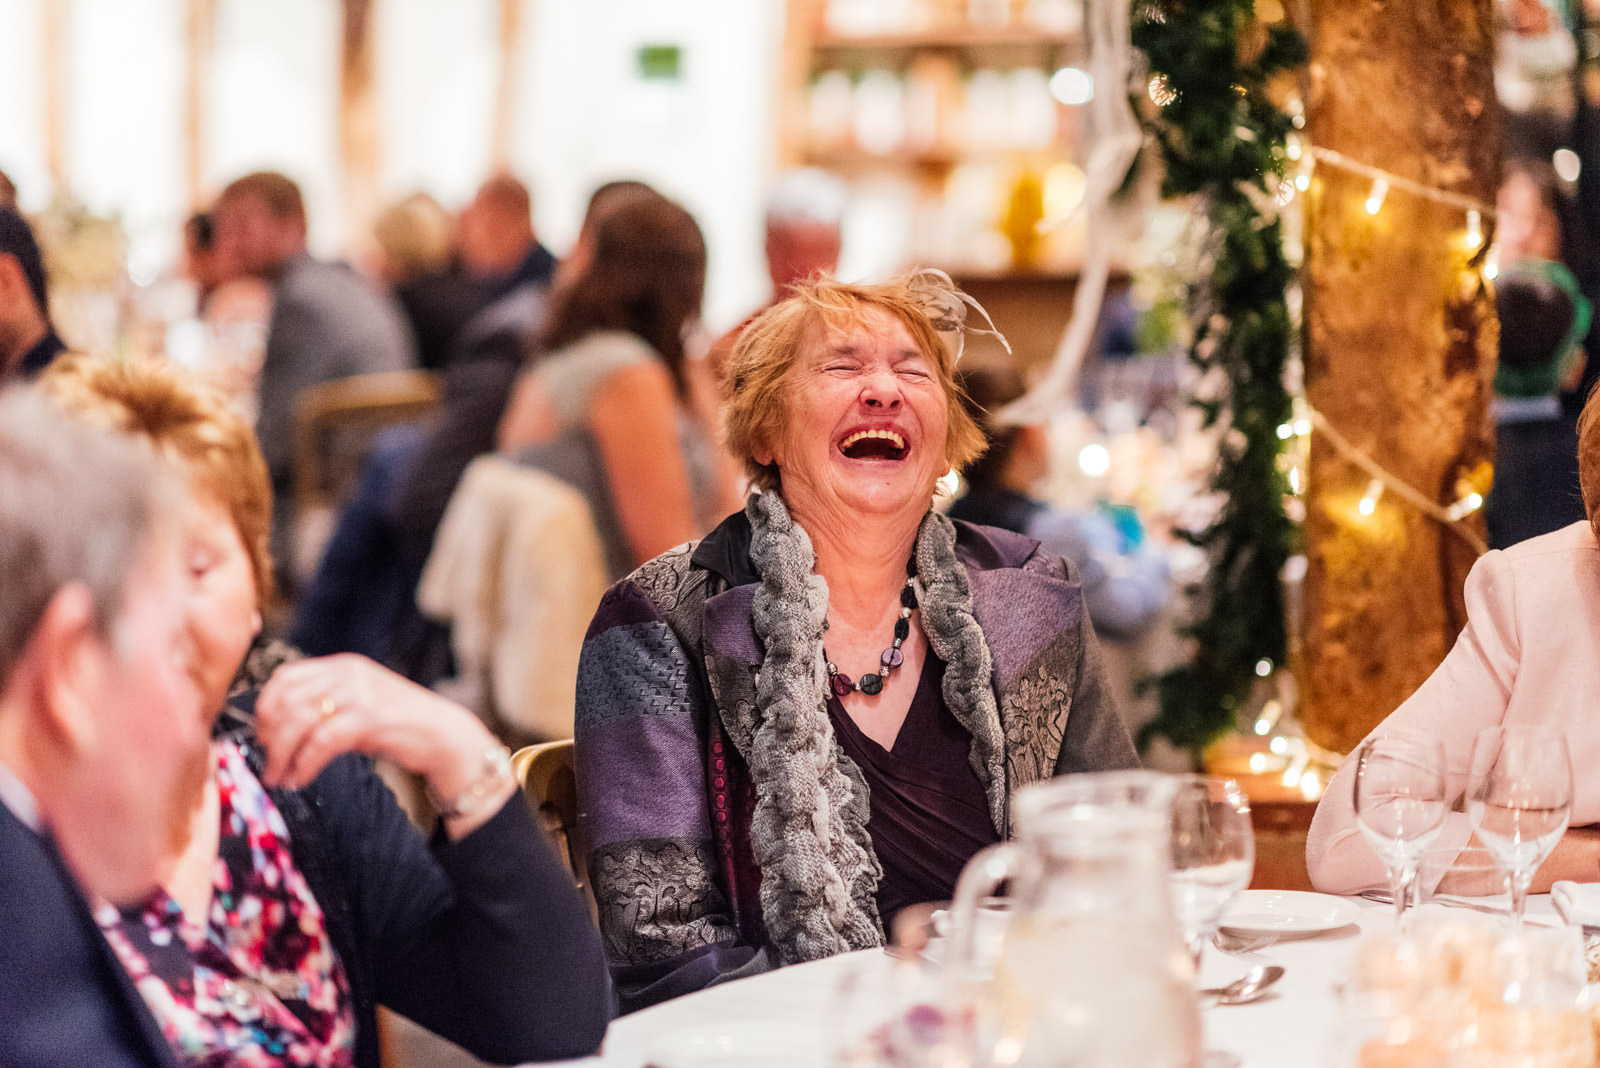 Guests laughing to speeches